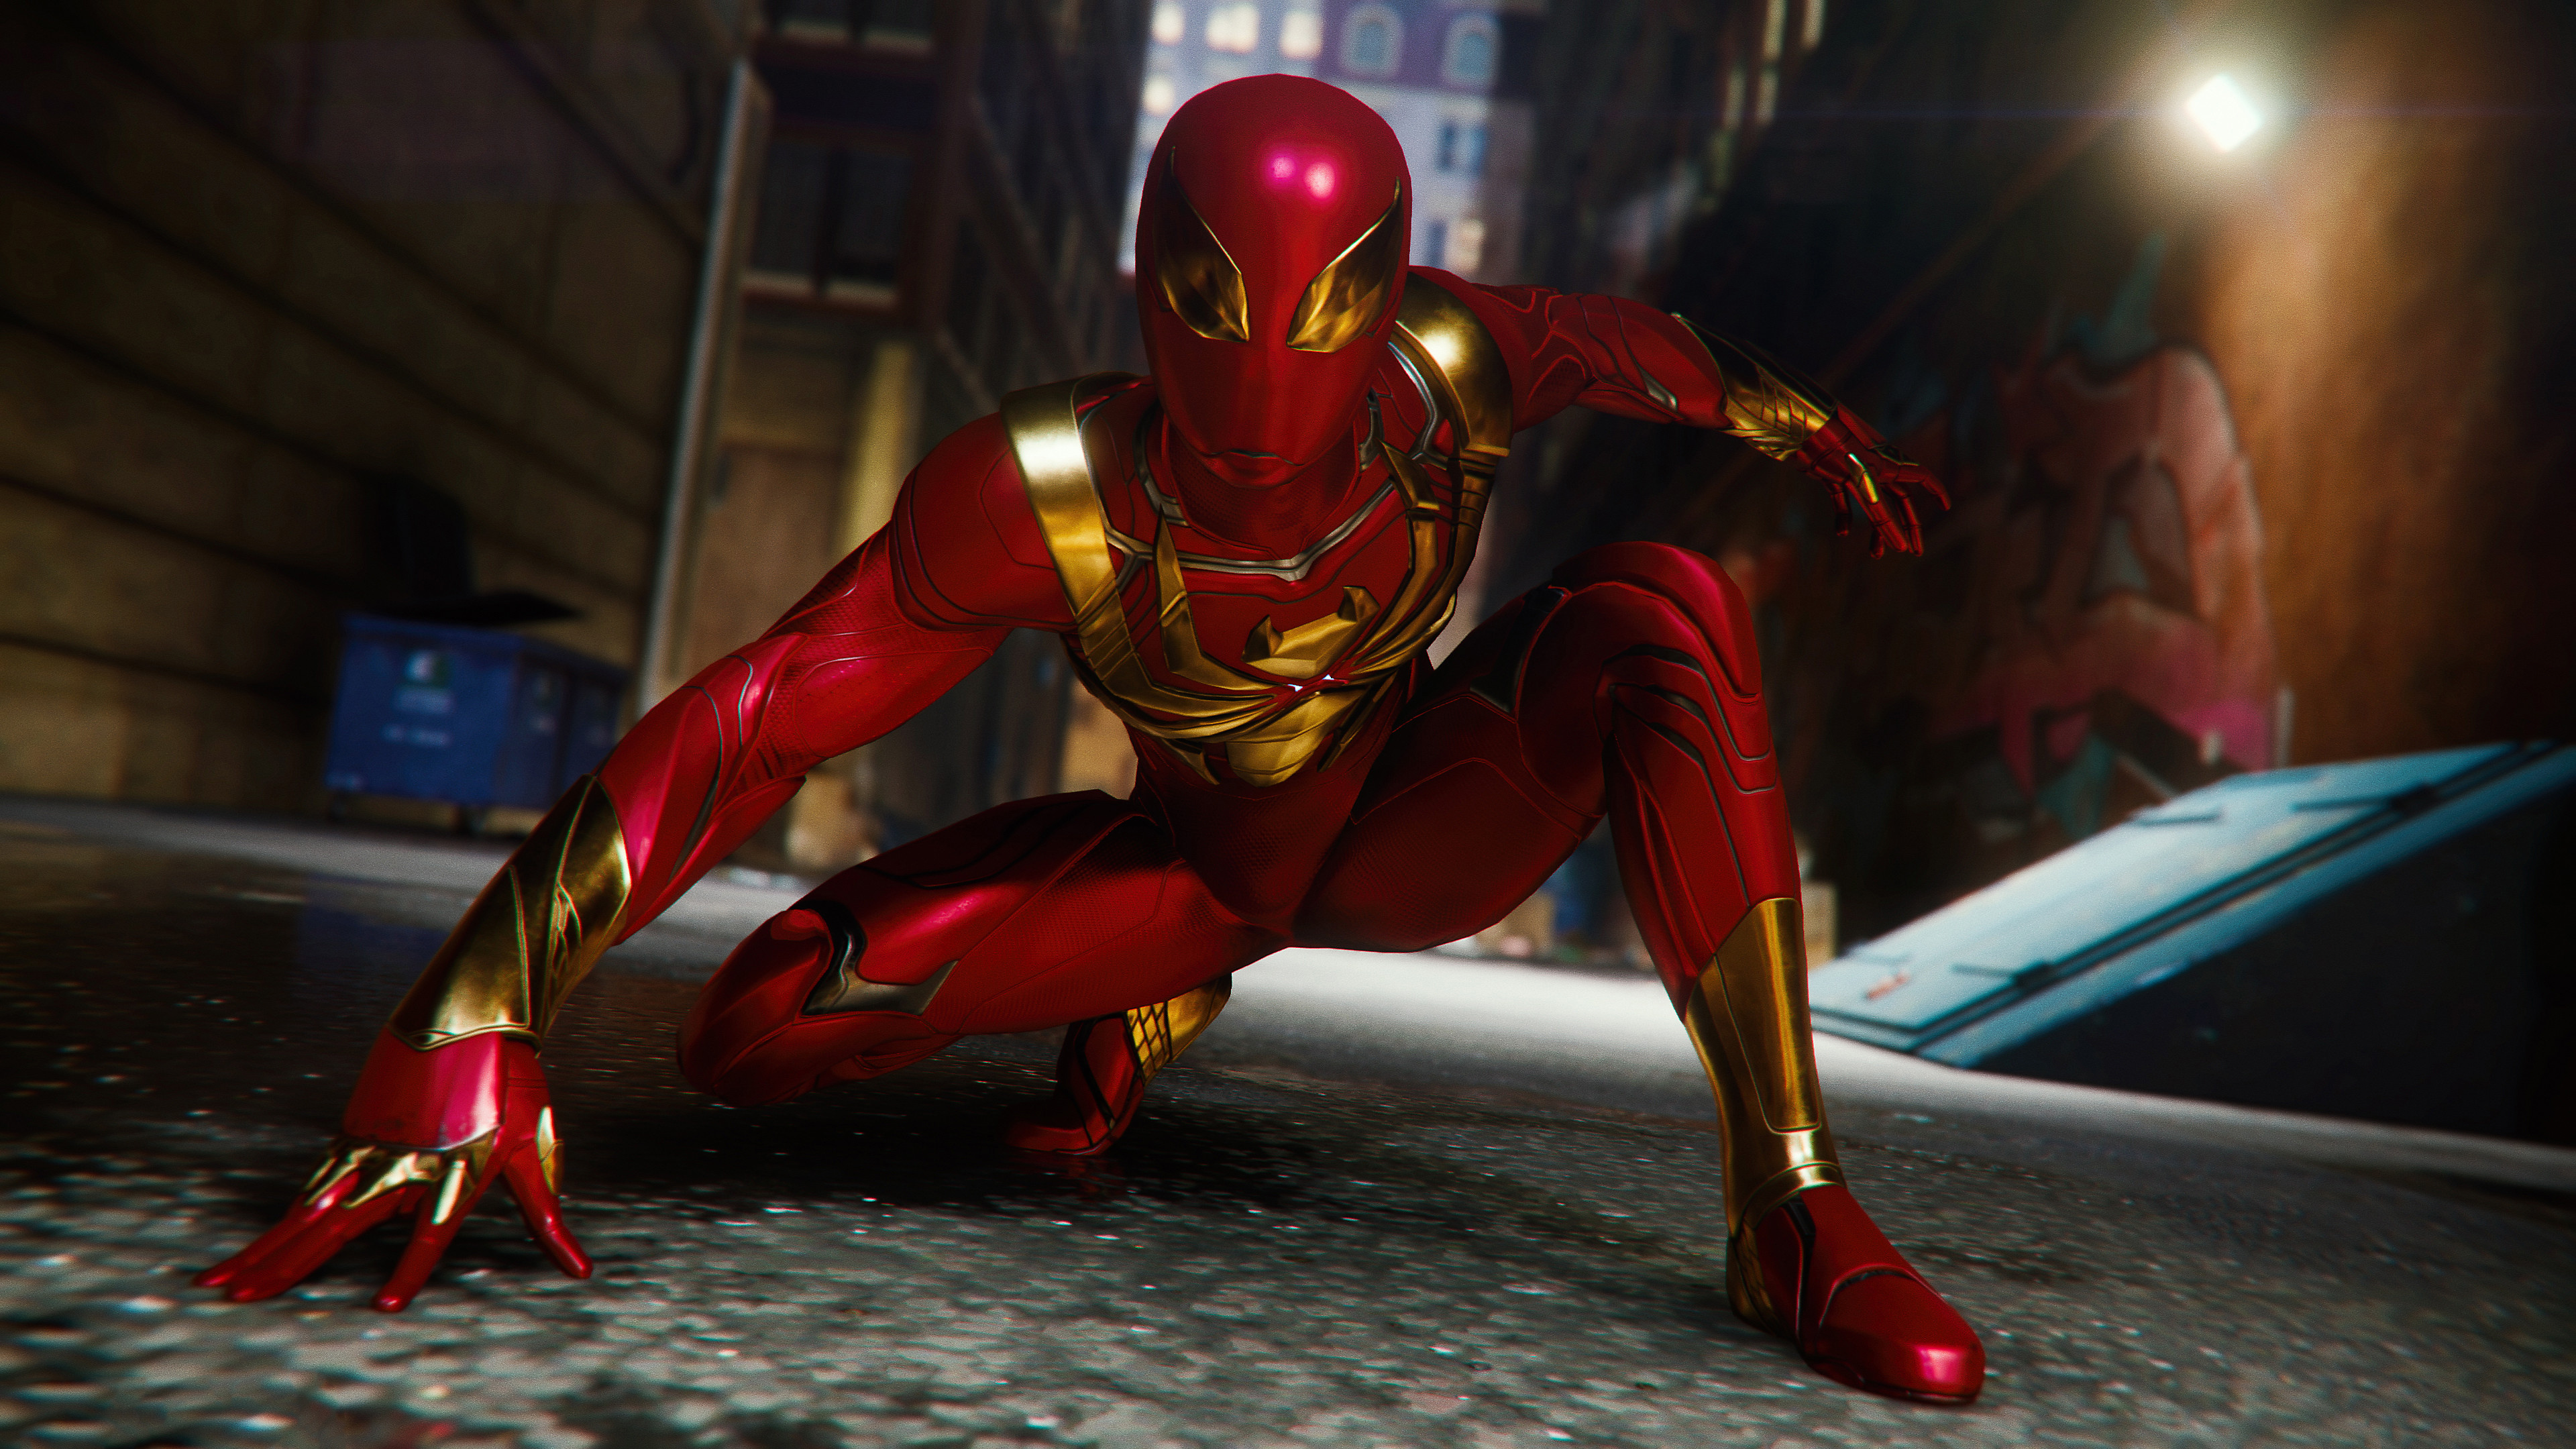 Spiderman Ps4 Red Suit Hd Games 4k Wallpapers Images Backgrounds